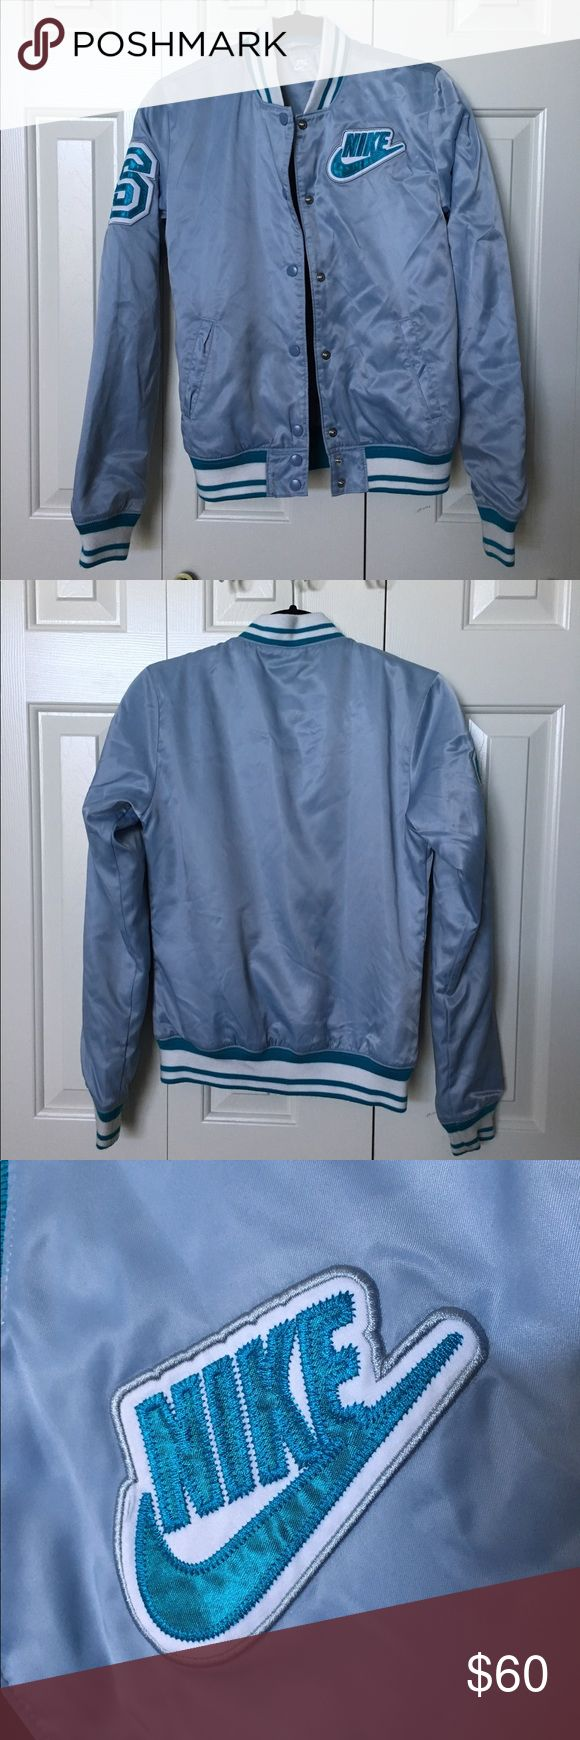 Nike Varsity Jacket Women's Small varsity jacket in a gorgeous powder blue! Never worn, in perfect condition! Nike Jackets & Coats